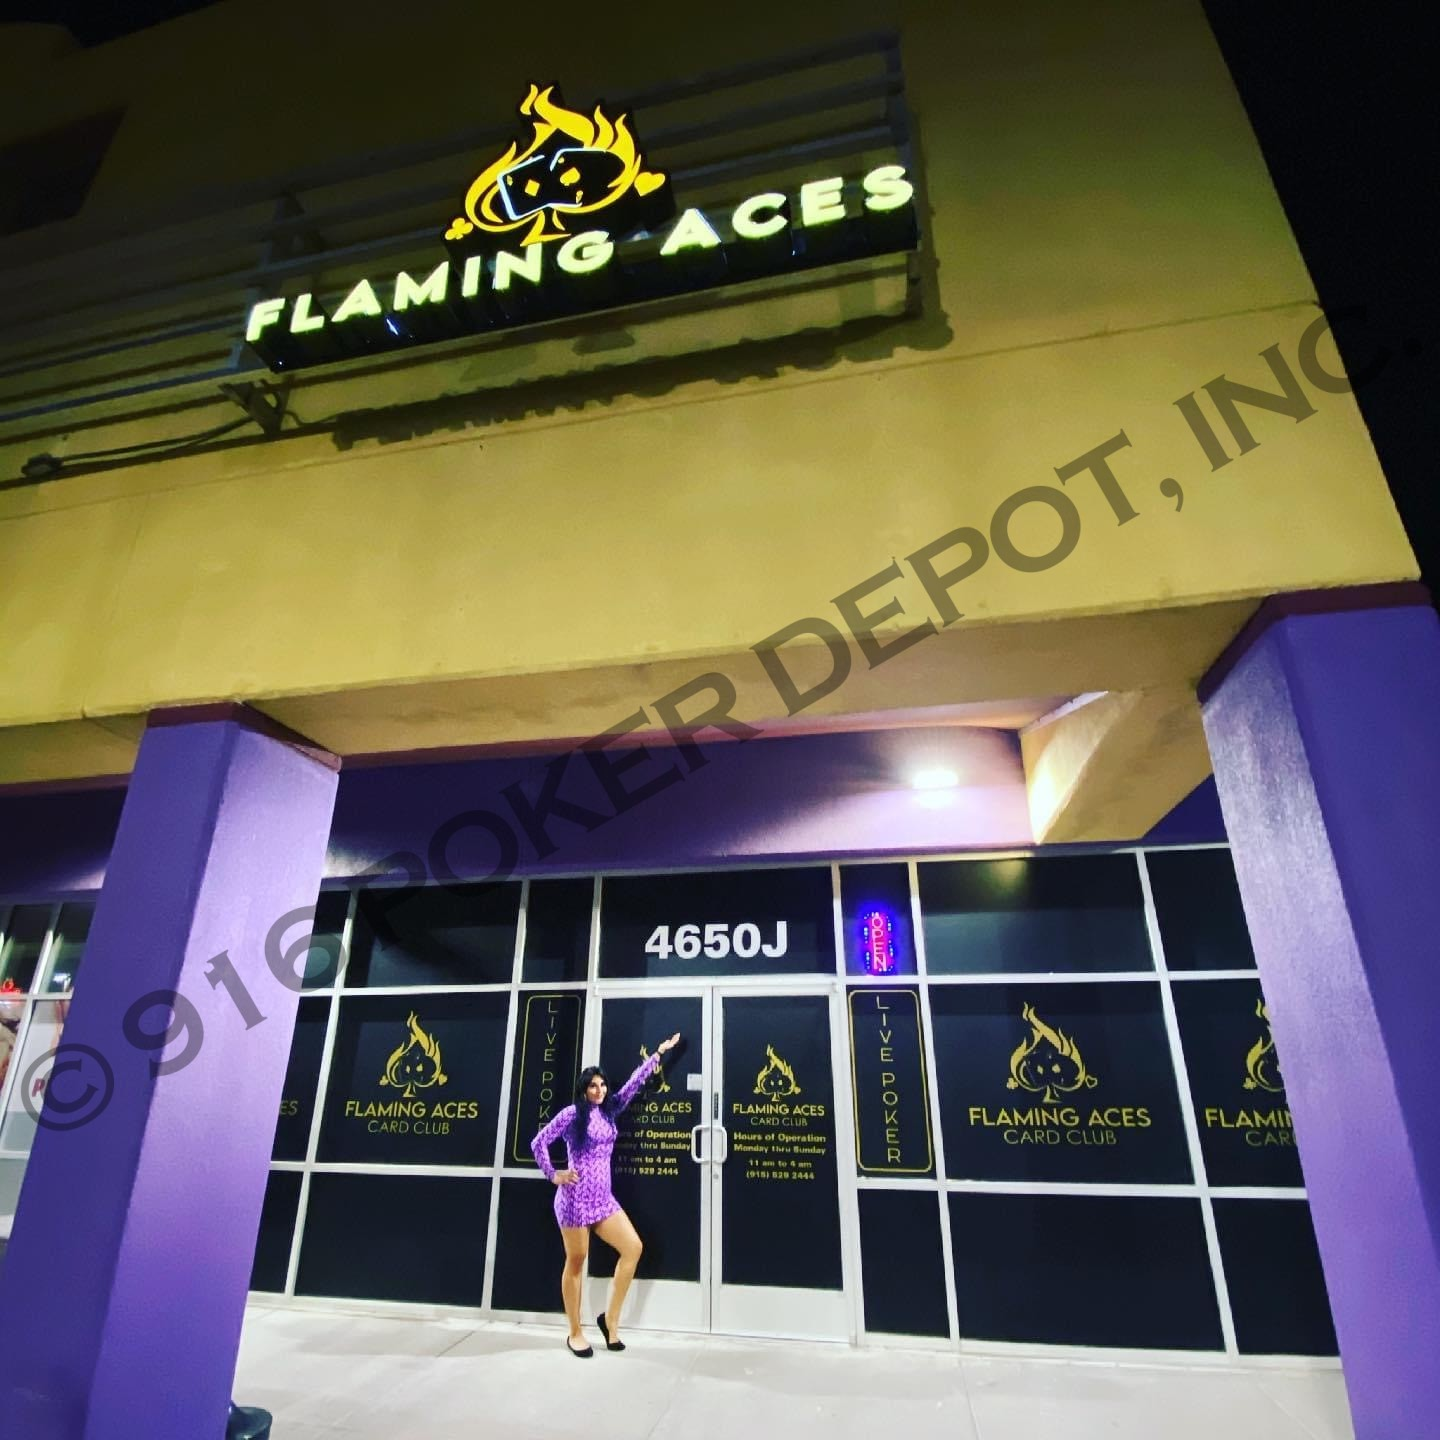 Flaming Aces